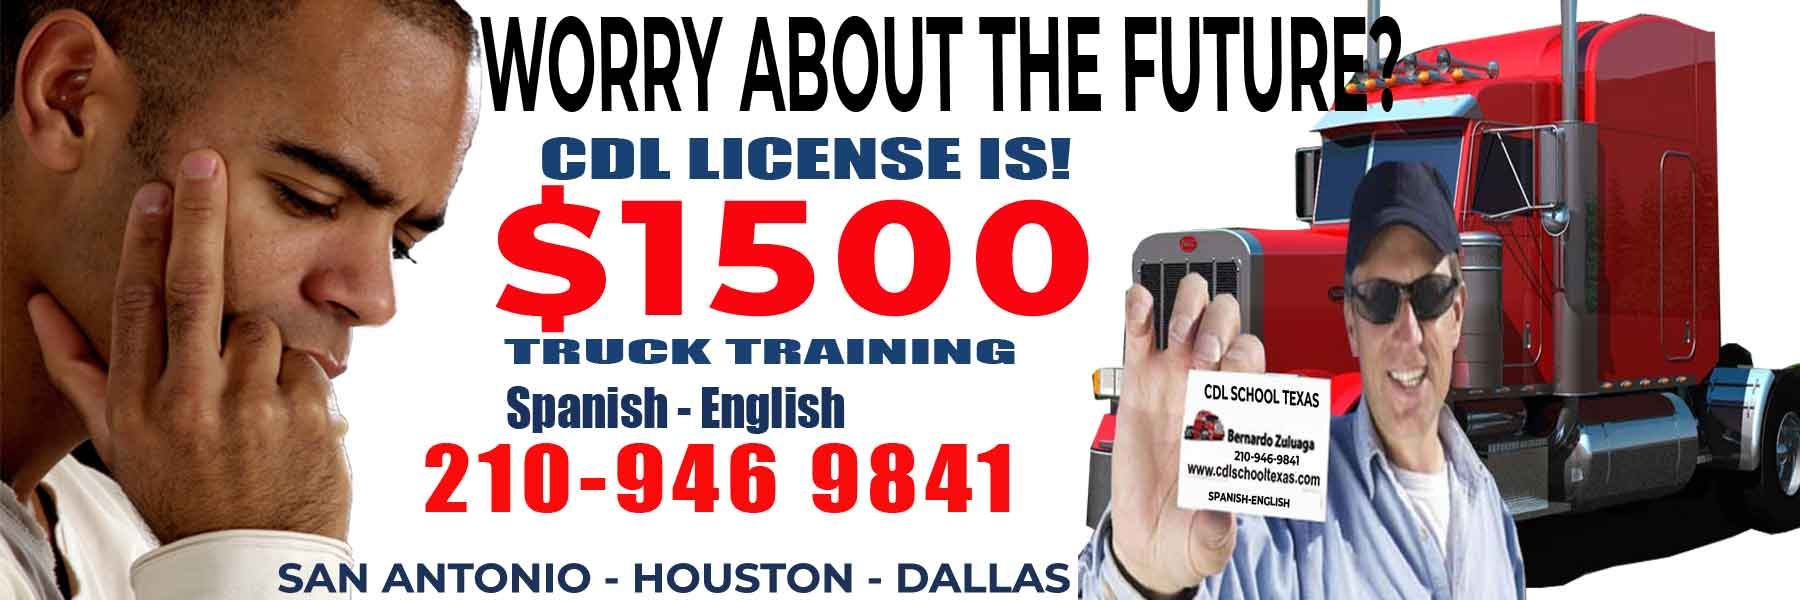 CDL school San Antonio Texas image show phone number, services and location